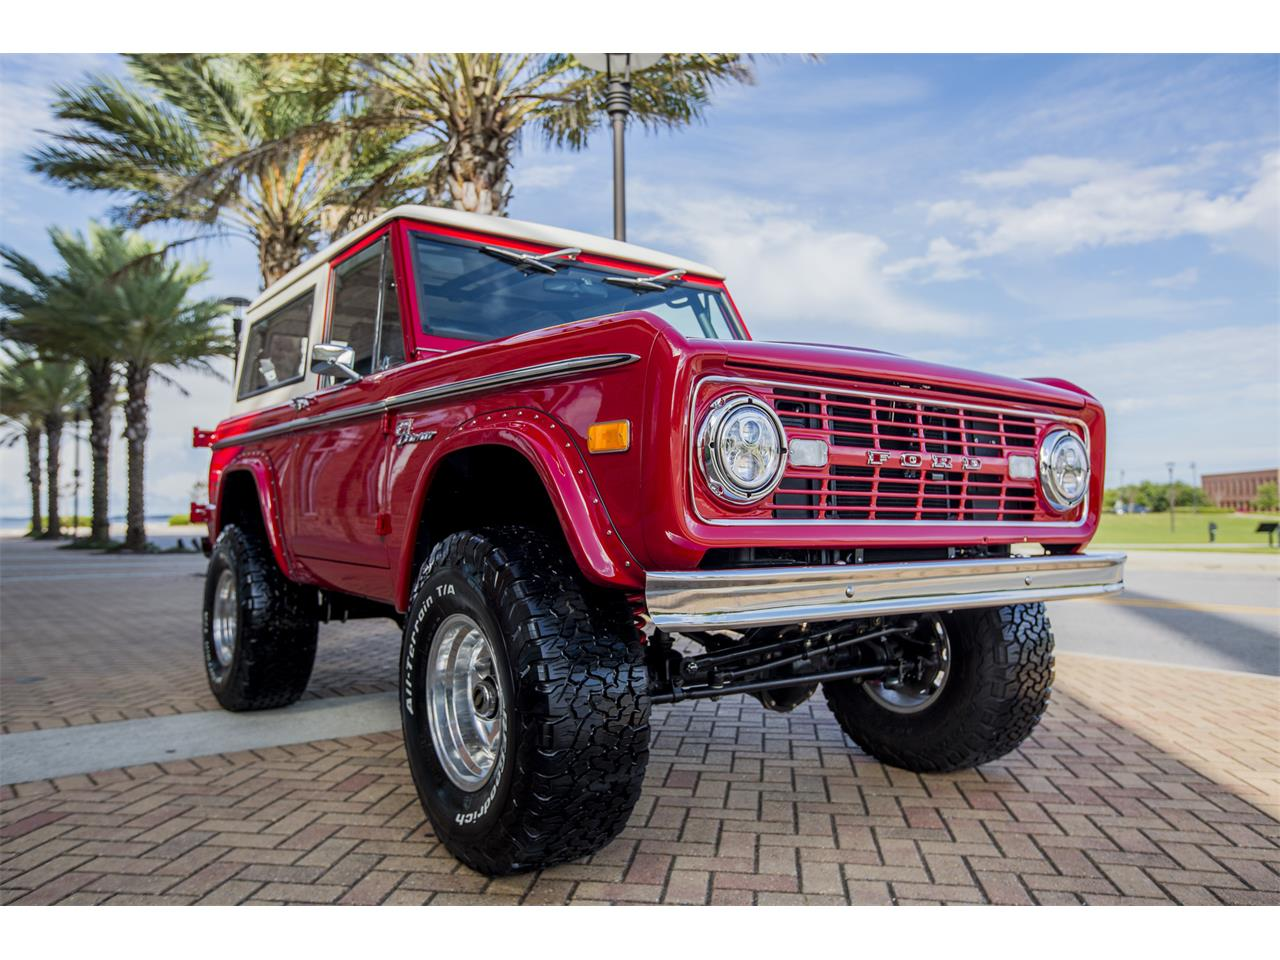 Large Picture of Classic 1972 Bronco located in Florida - $199,900.00 Offered by Velocity Restorations - Q4JV